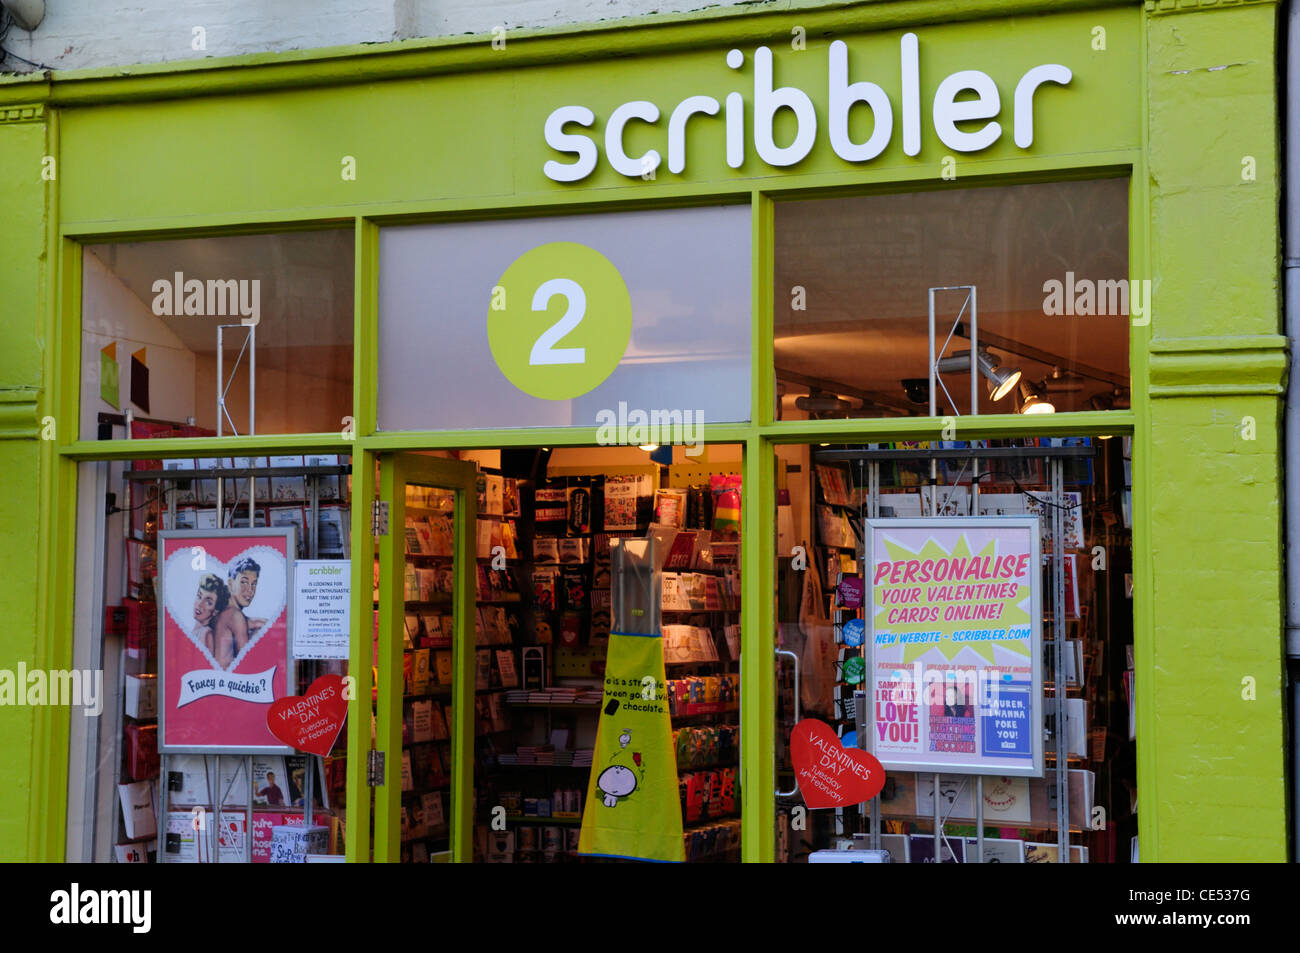 Scribbler greetings cards shop cambridge england uk stock photo scribbler greetings cards shop cambridge england uk kristyandbryce Images